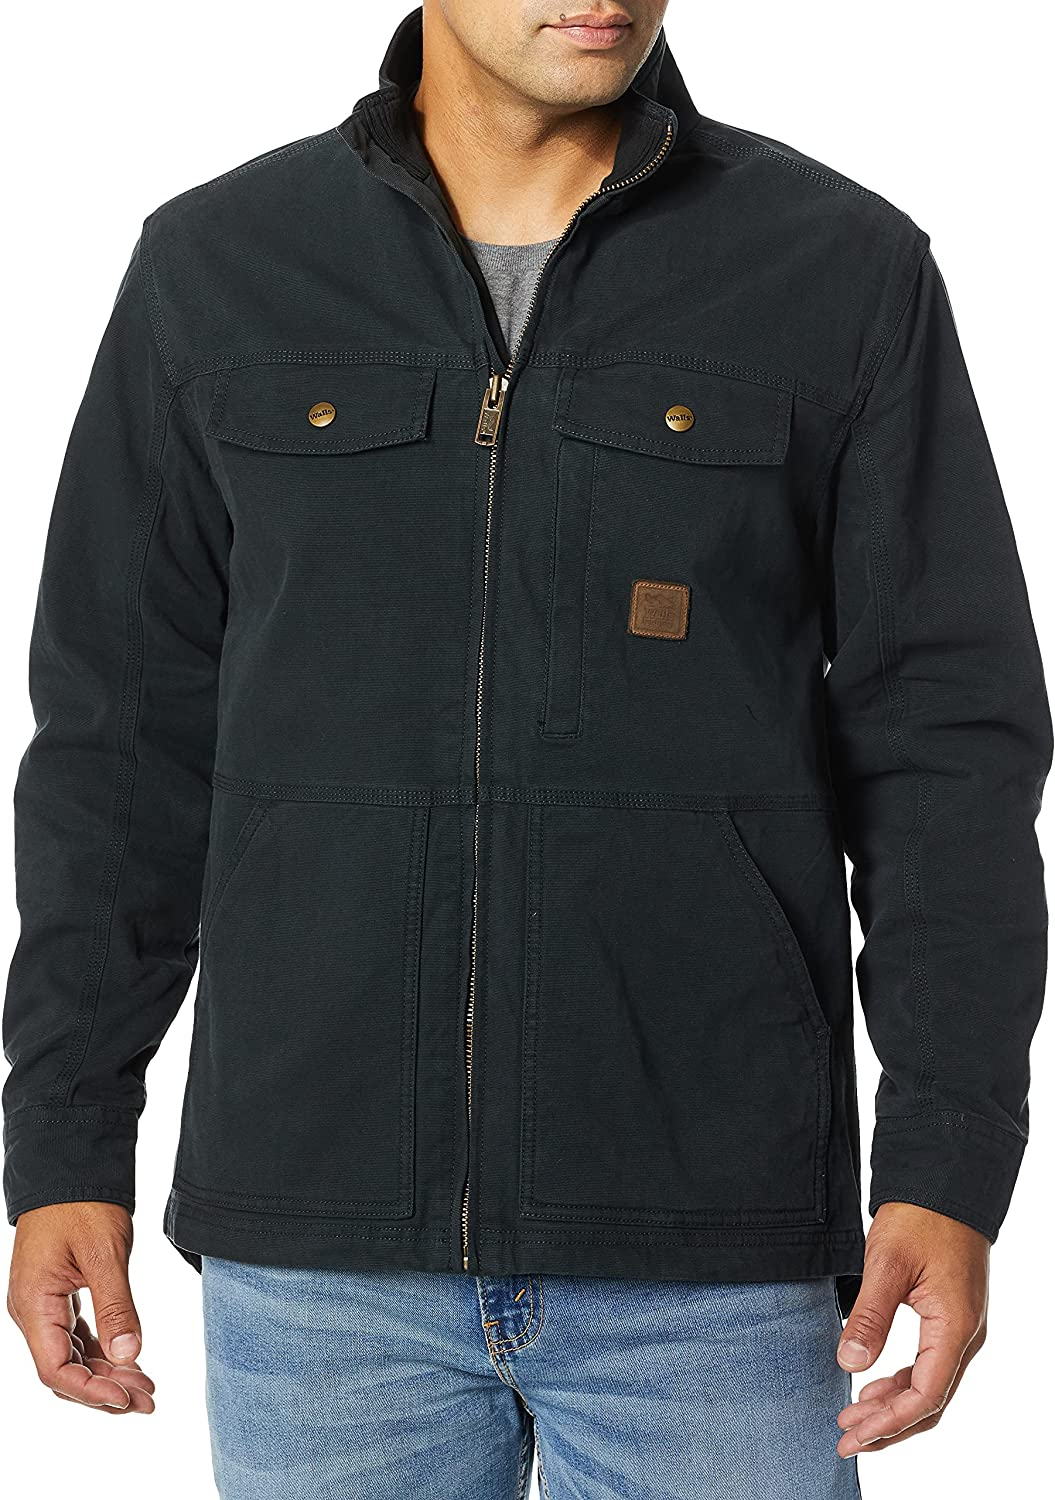 Walls Men's Vintage Lined Cotton Duck Jacket with Stretch